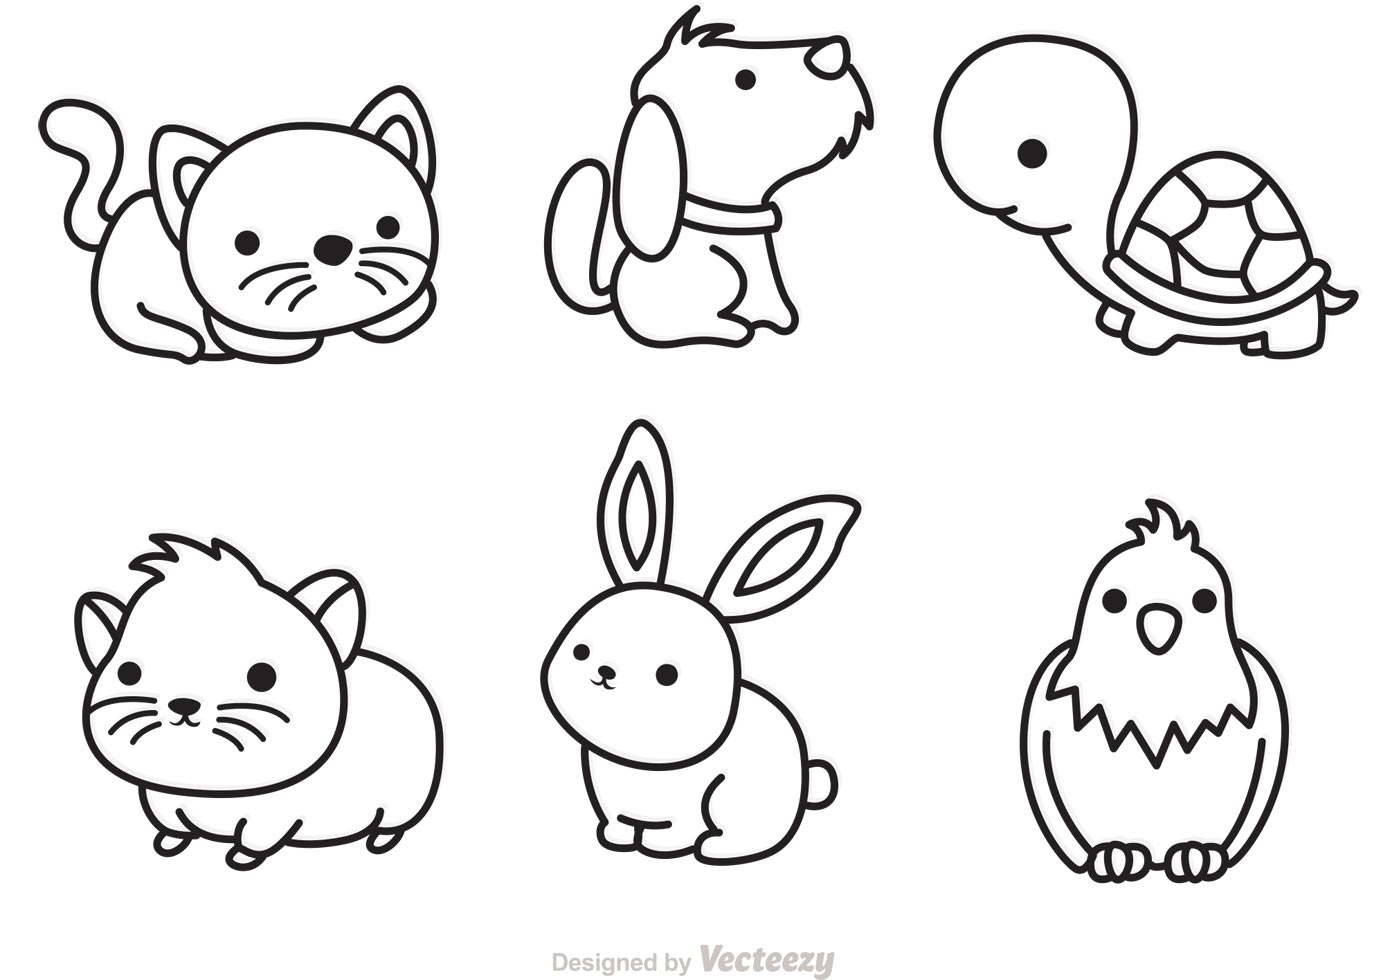 Cute Pets Outline Vector - Download Free Vector Art, Stock ...